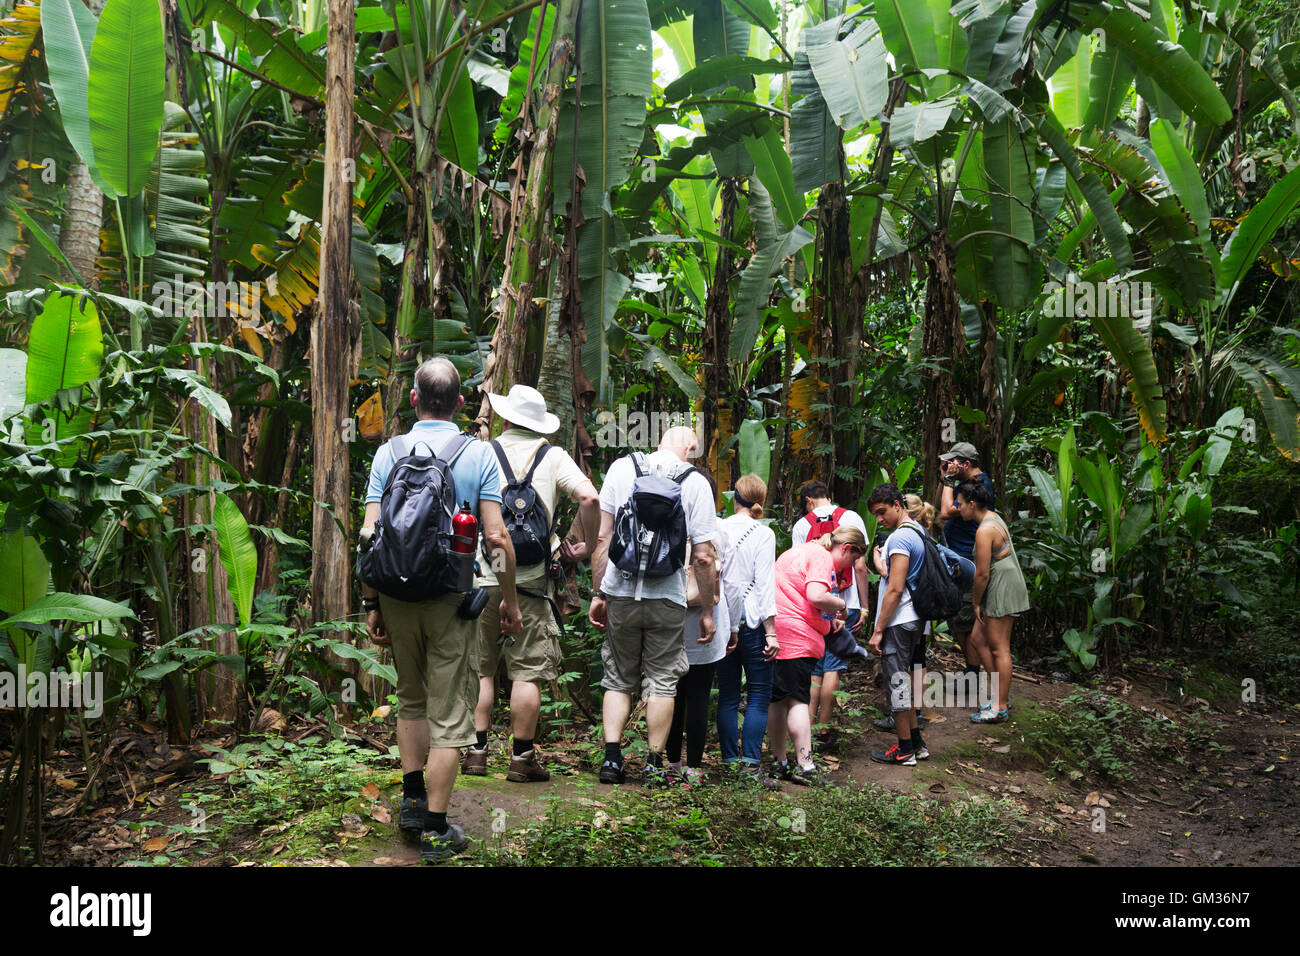 Tourists on a guided tour in the Costa Rica rainforest, Parque Carara, Costa Rica, Central America - Stock Image